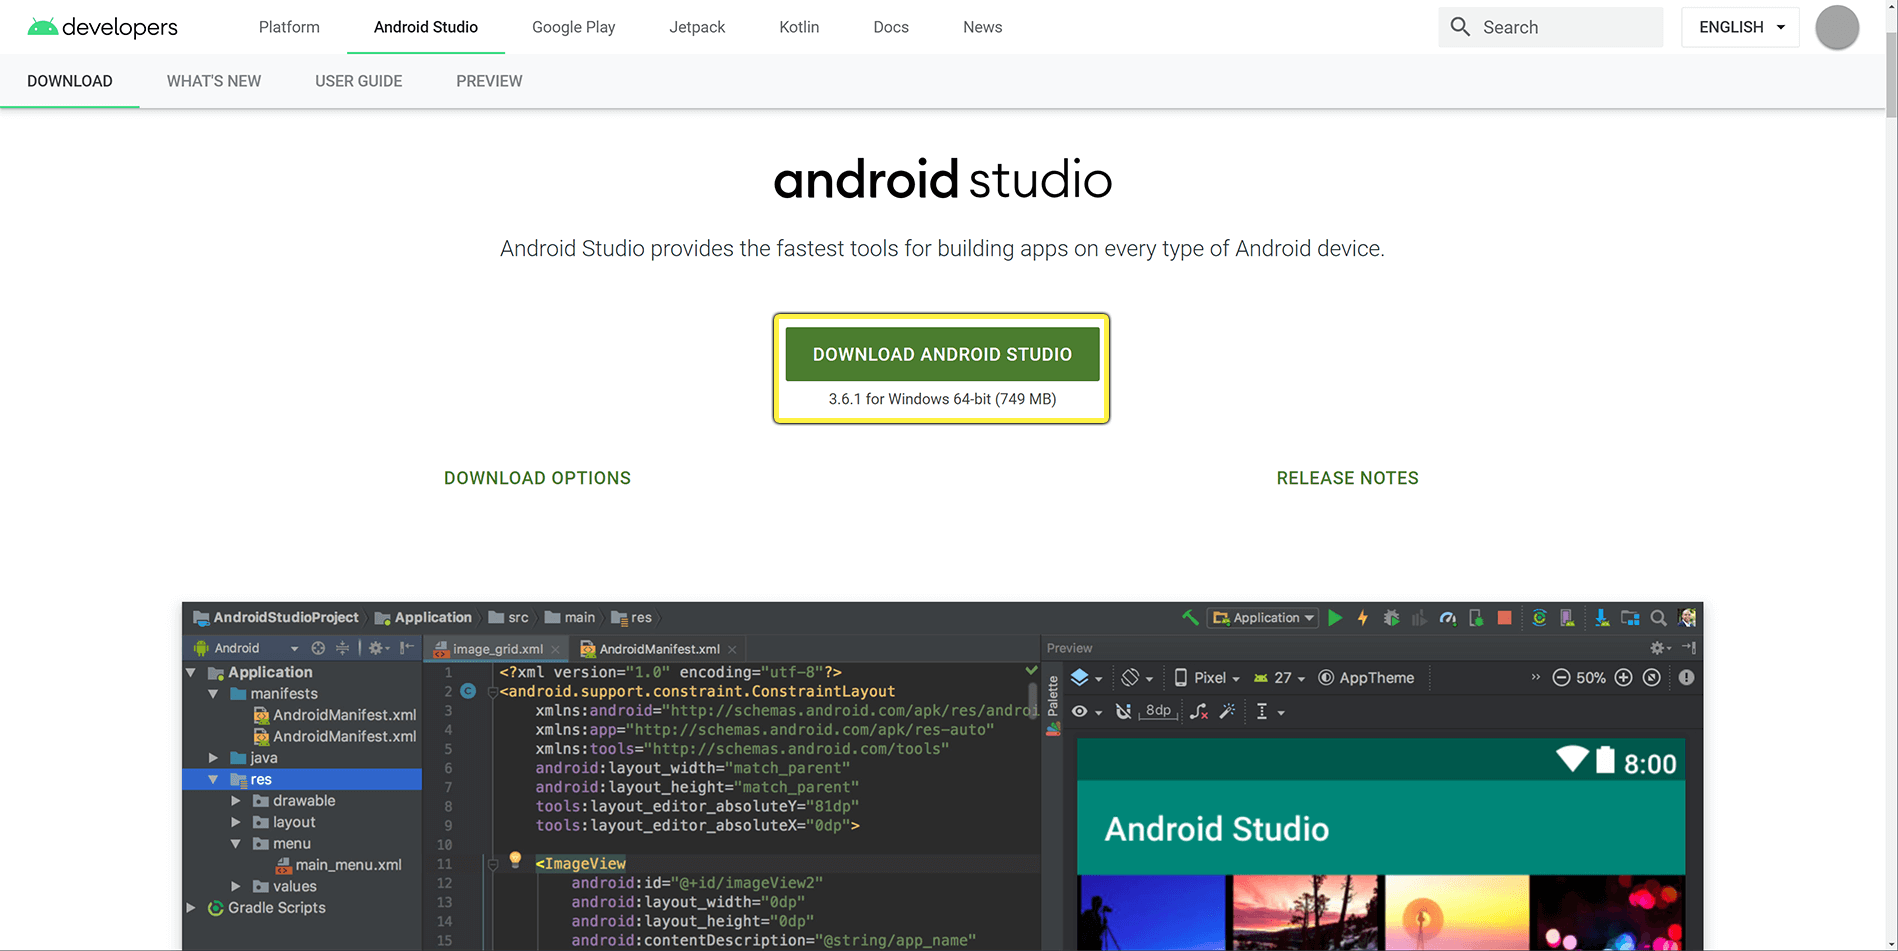 TechBlog_AndroidStudio_Download.png